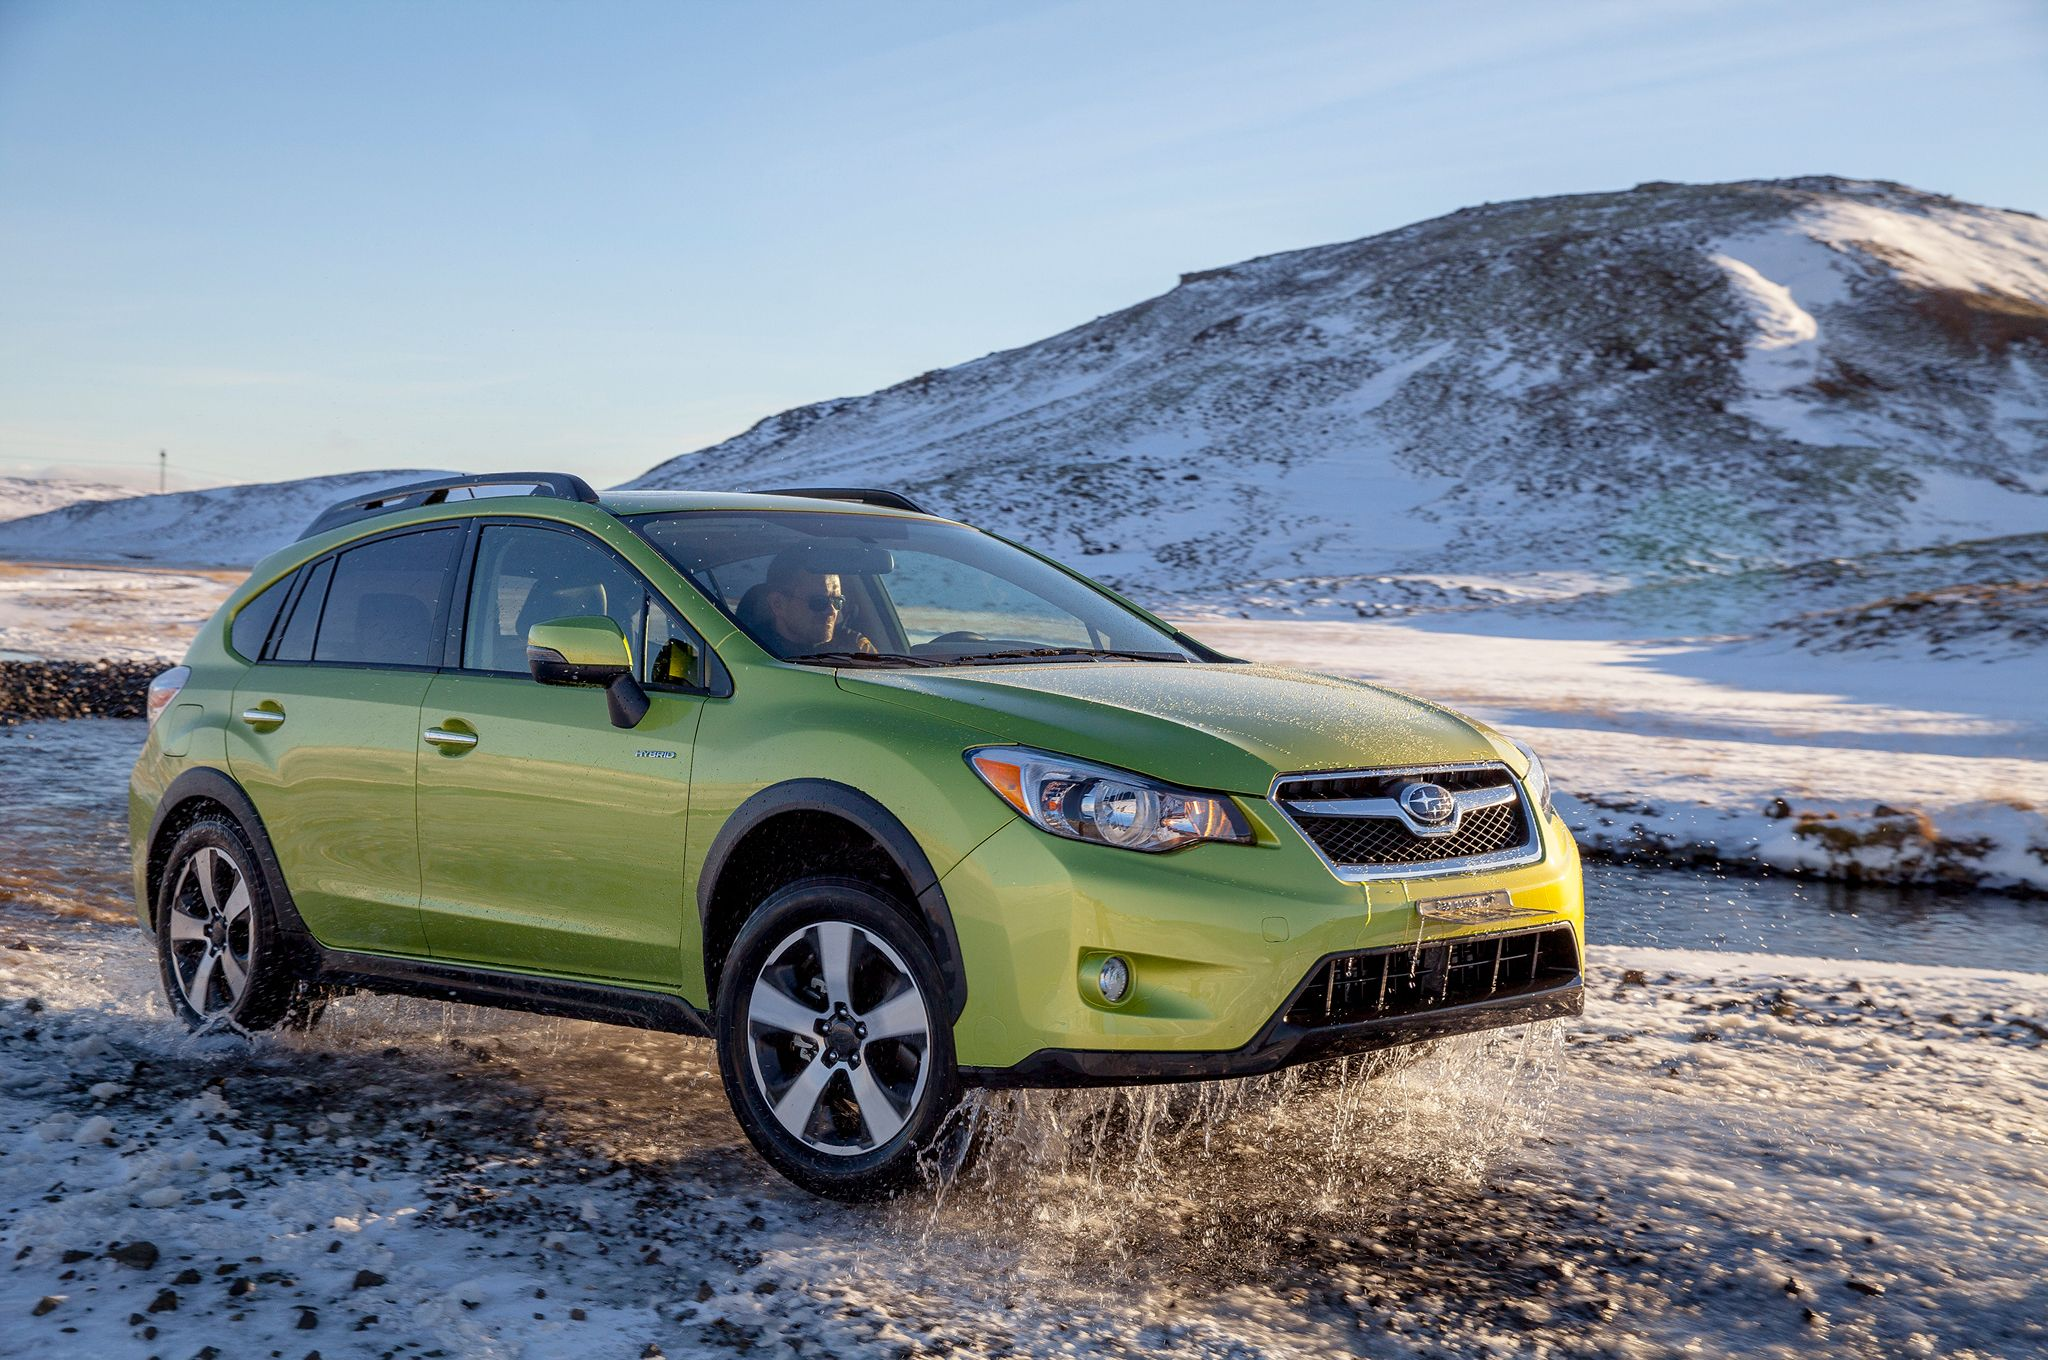 Every Subaru model is designed with features important to you from